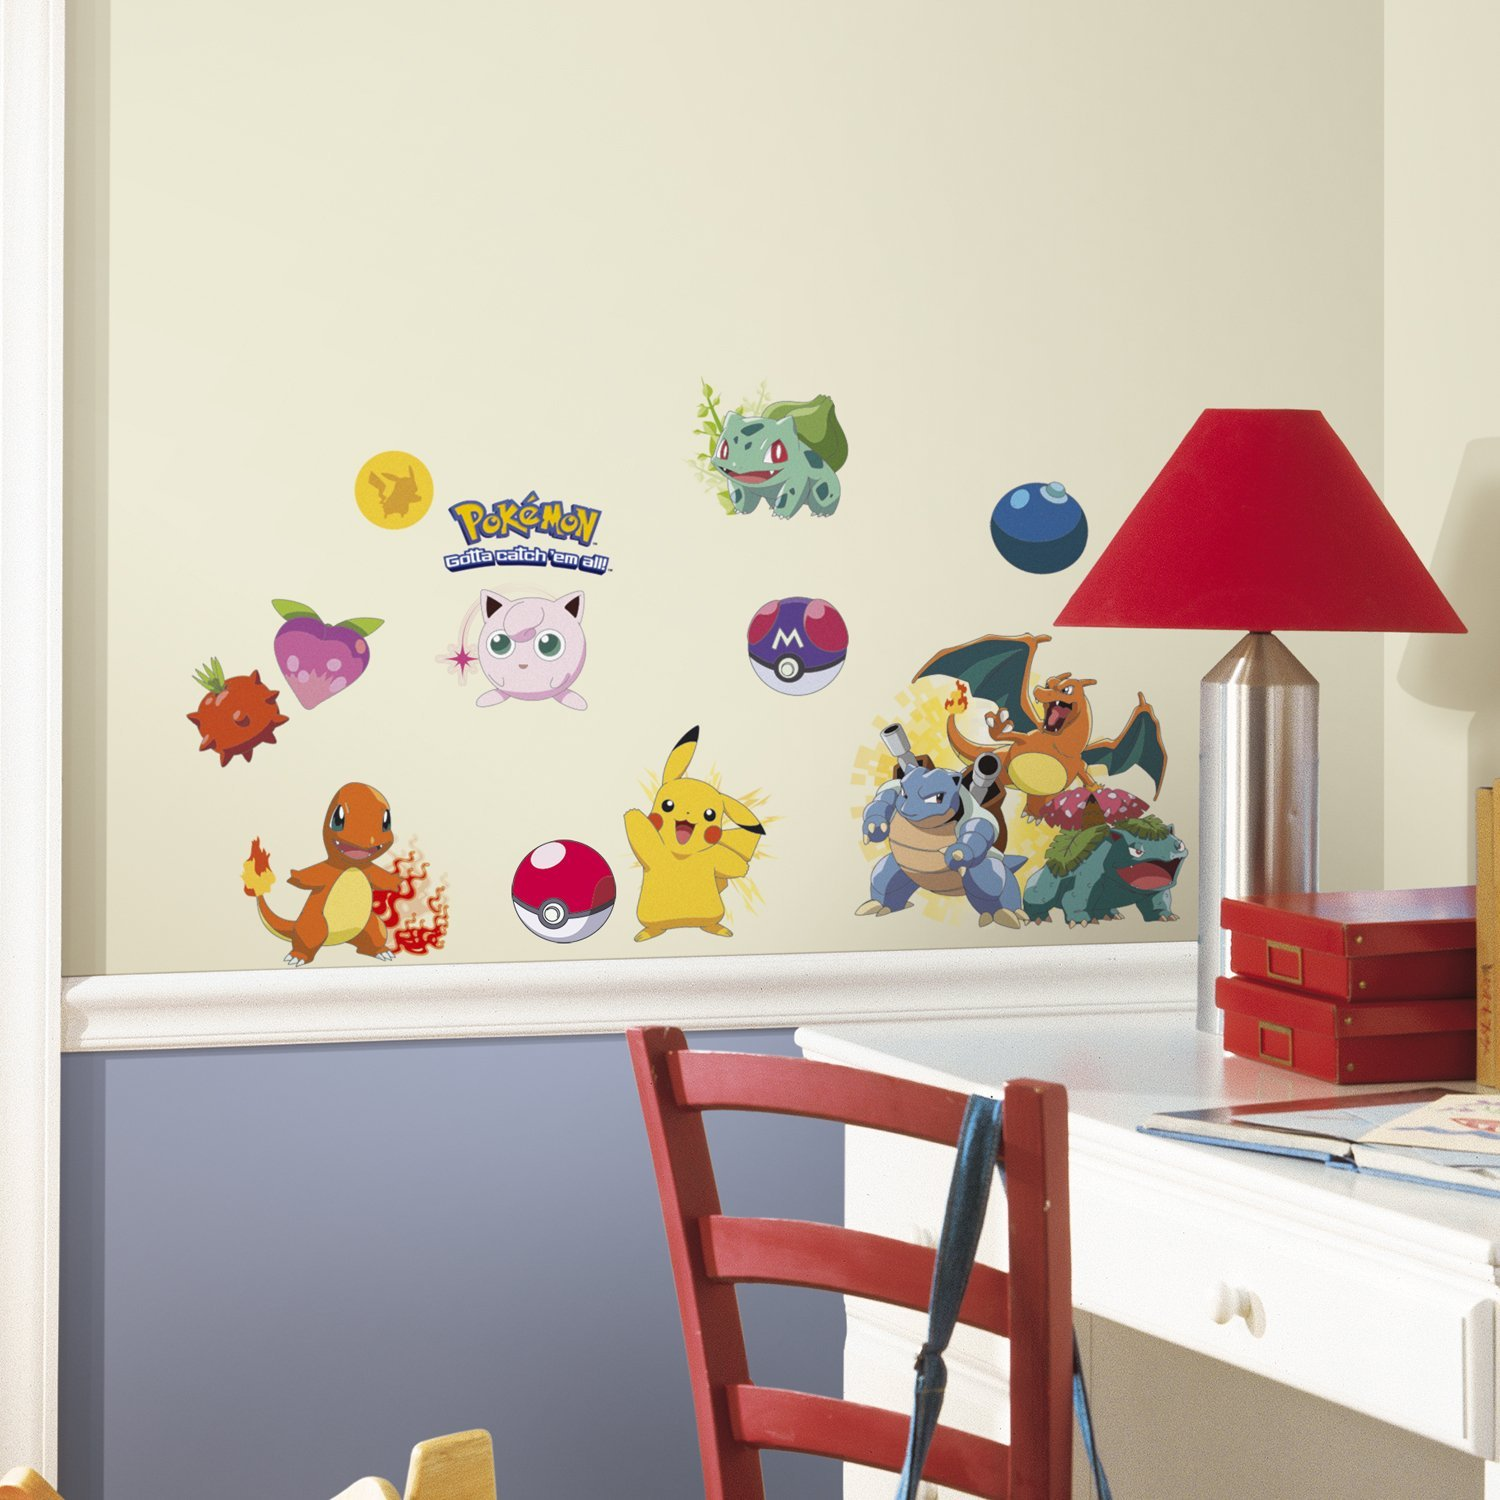 Small packs of Pokémon stickers allow your kids to get creative and decorate the room themselves.